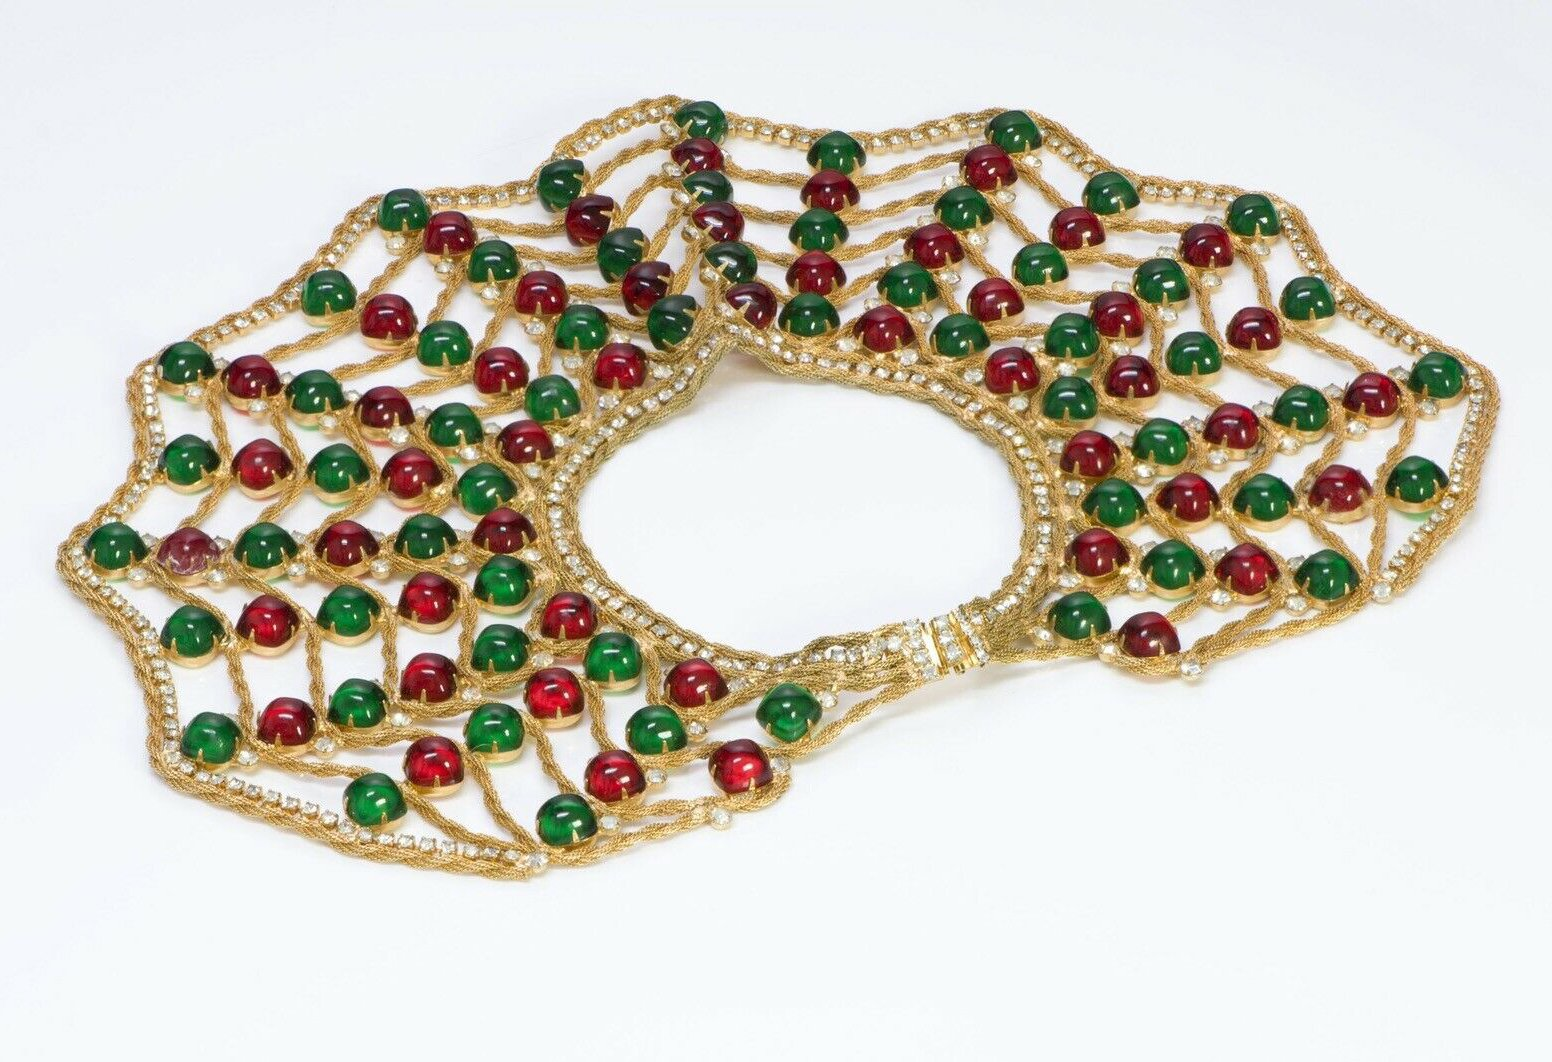 kenneth-jay-lane-kjl-1960-s-spider-web-collar-necklace